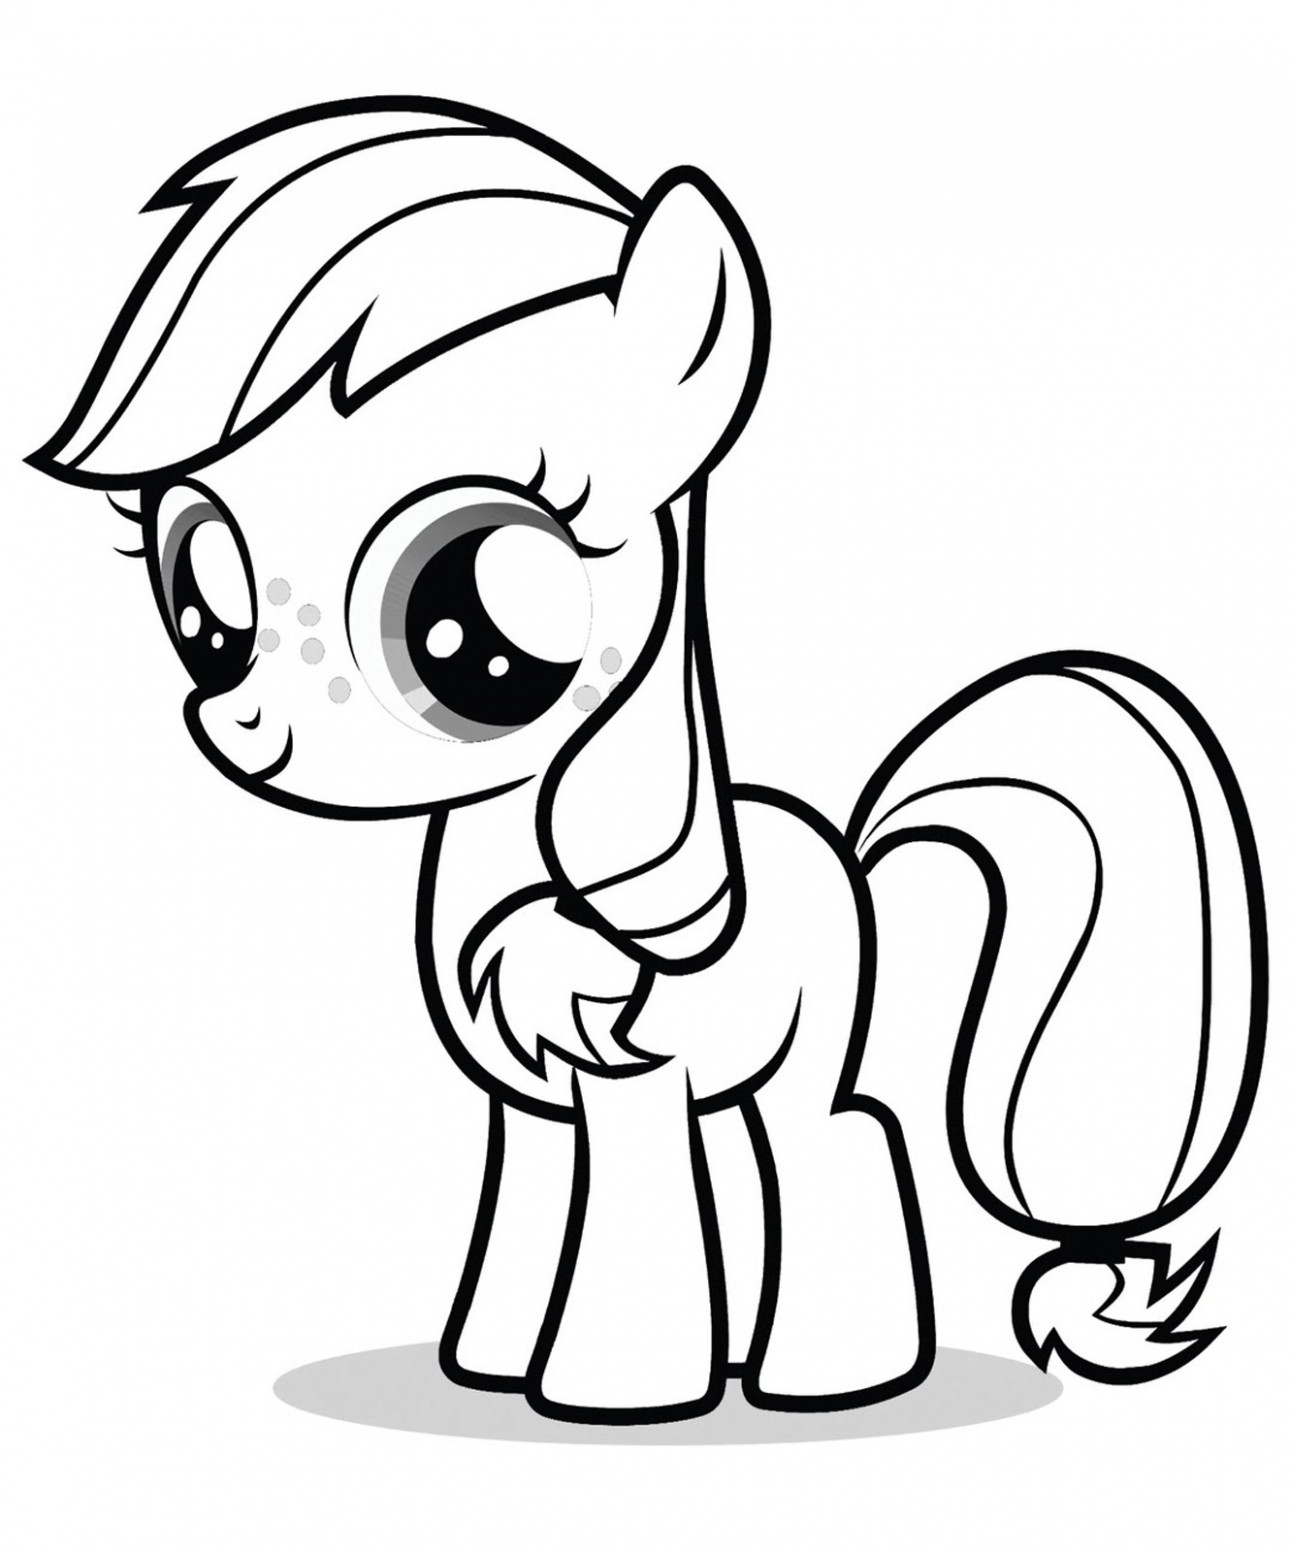 My Little Pony Coloring Pages Printable Download | Free Coloring Books – my little pony coloring book